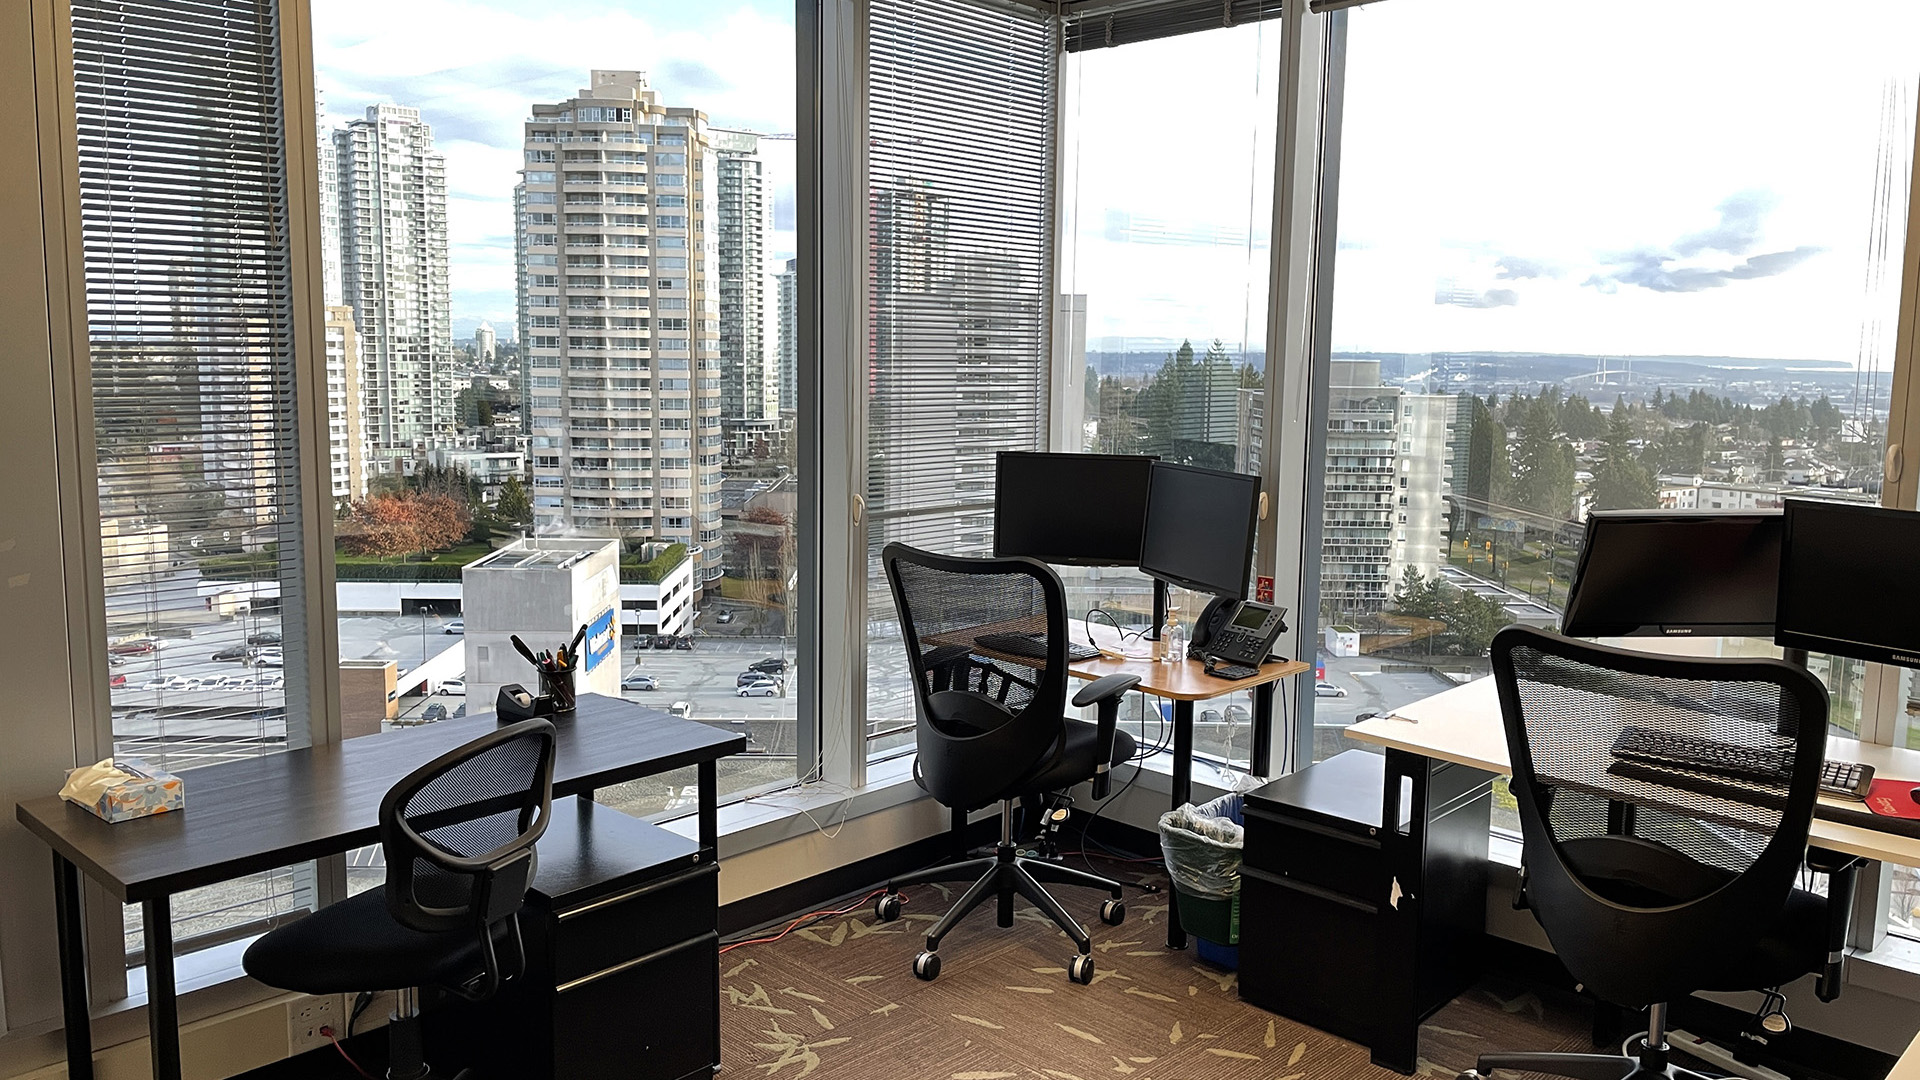 4720 Kingsway - multi person office